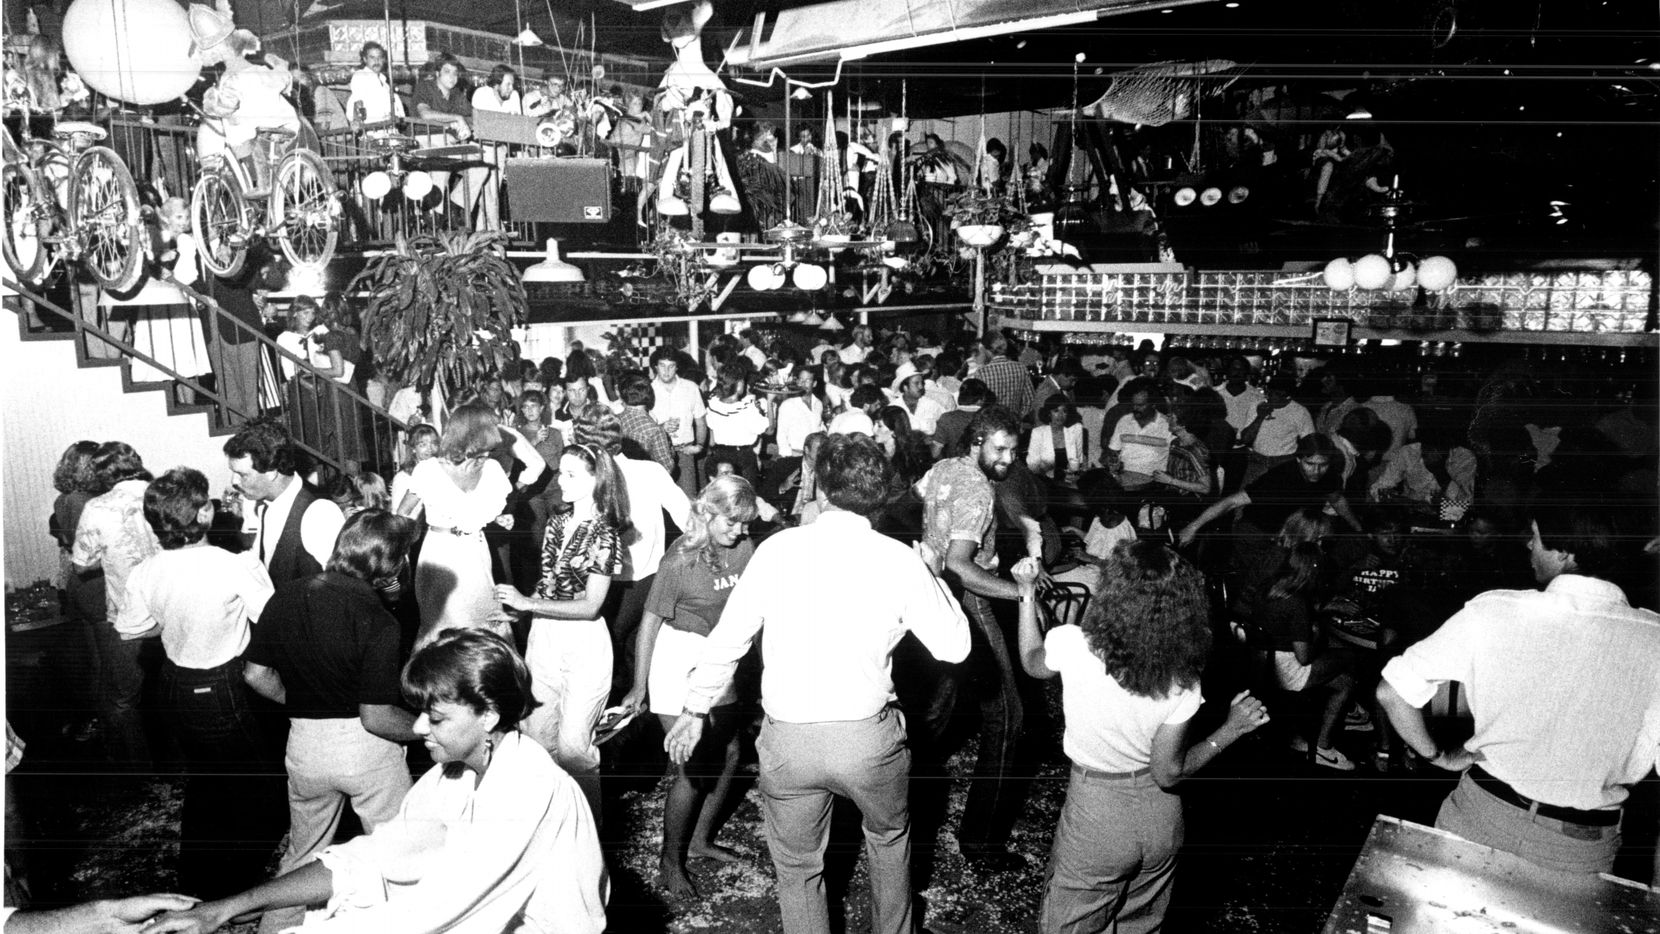 Confetti has it all: drinking, dancing, and lots of socializing. Published on Aug. 1, 1982.